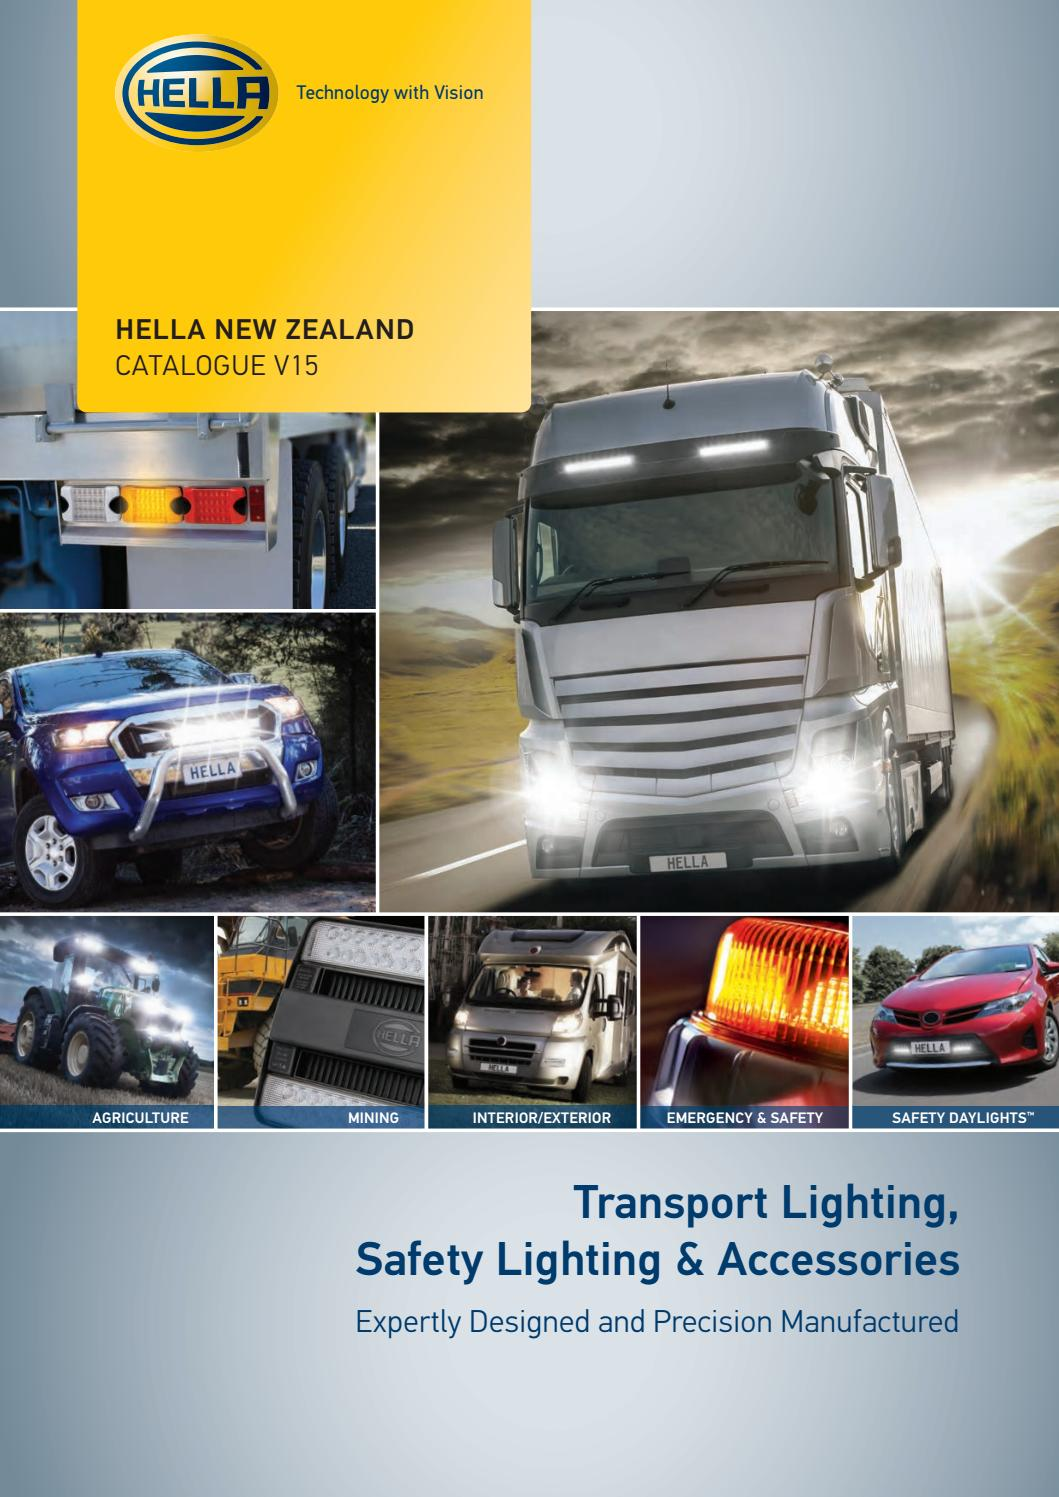 hella flasher wiring diagram hella new zealand catalogue v15 by hella nz issuu  new zealand catalogue v15 by hella nz